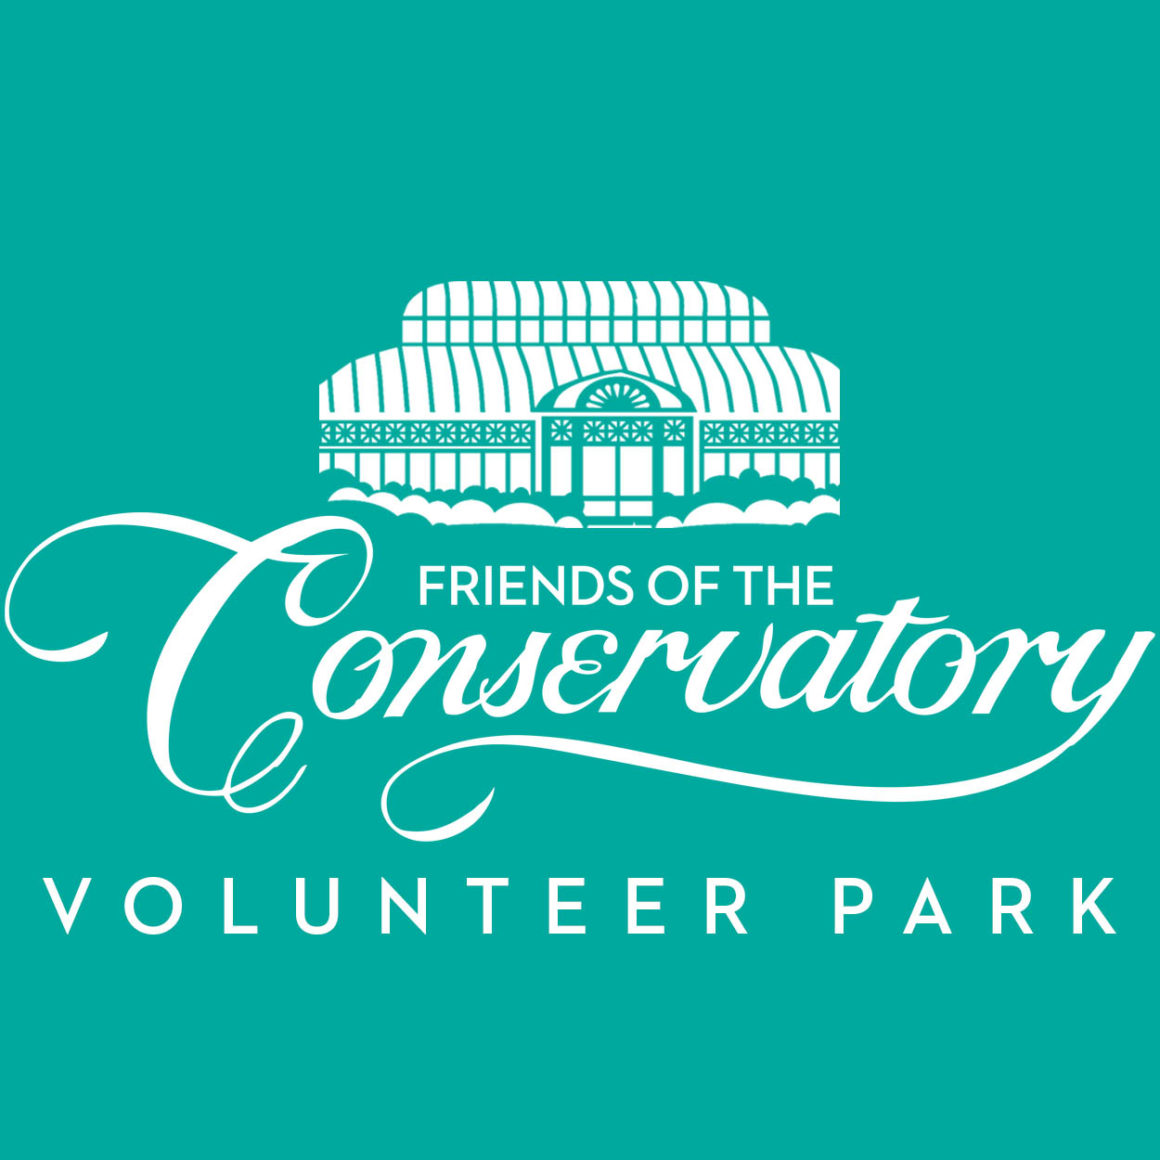 Friends of the Conservatory